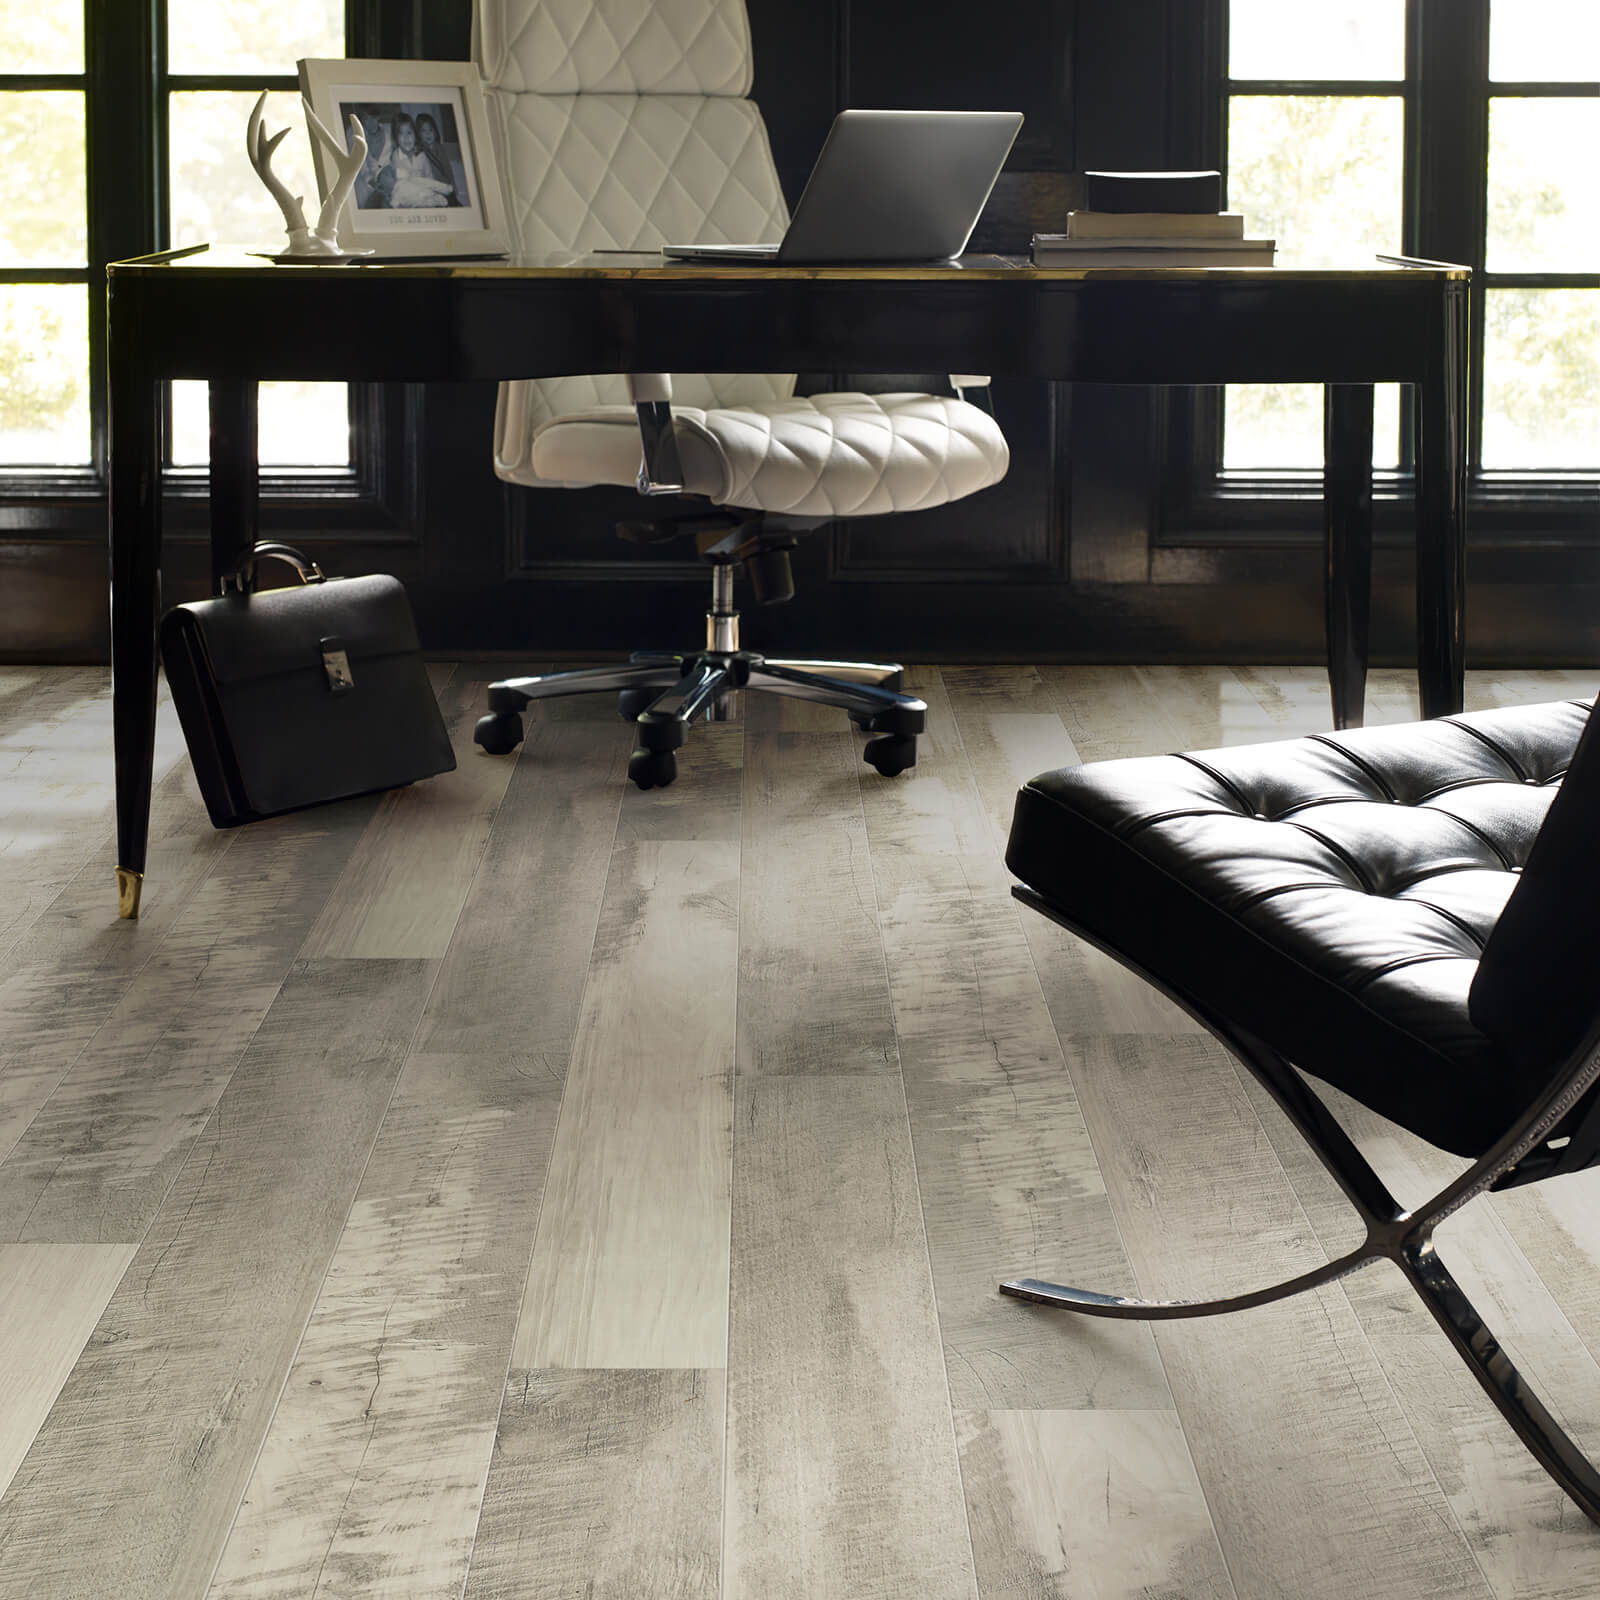 Pierpark office flooring | Noble Floors LLC